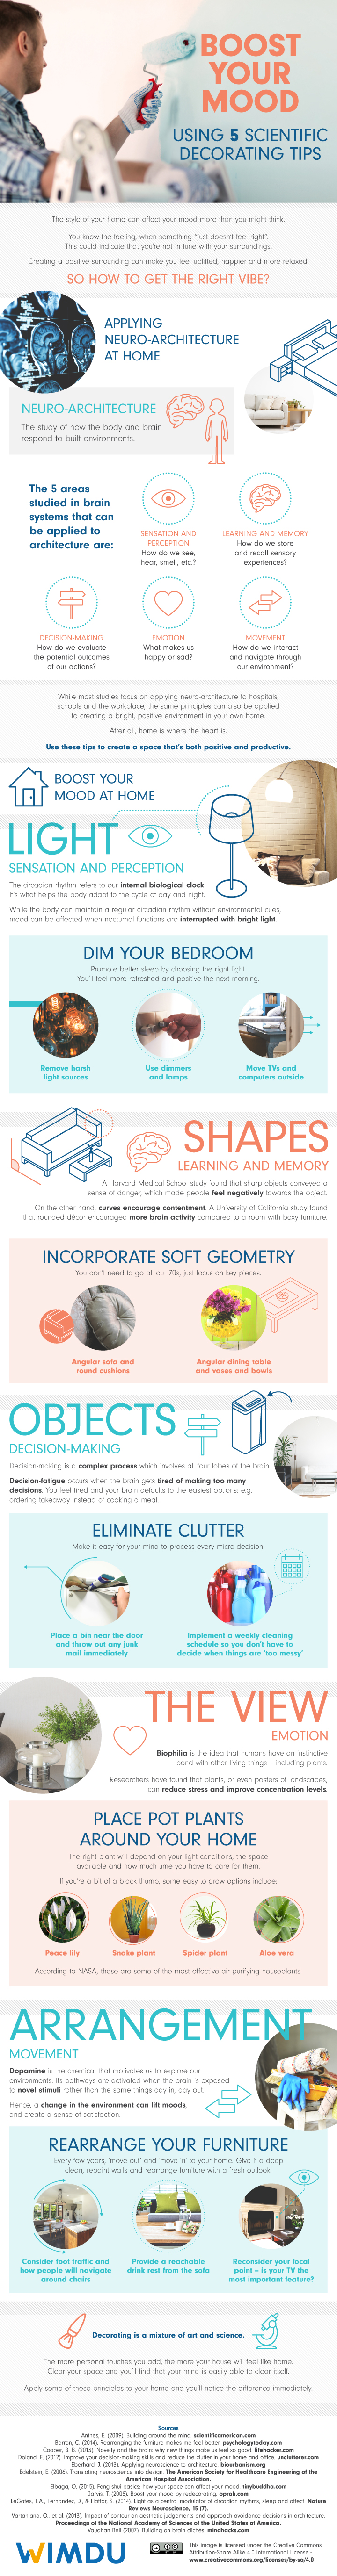 boost-your-mood-using-5-scientific-decorating-tips-2